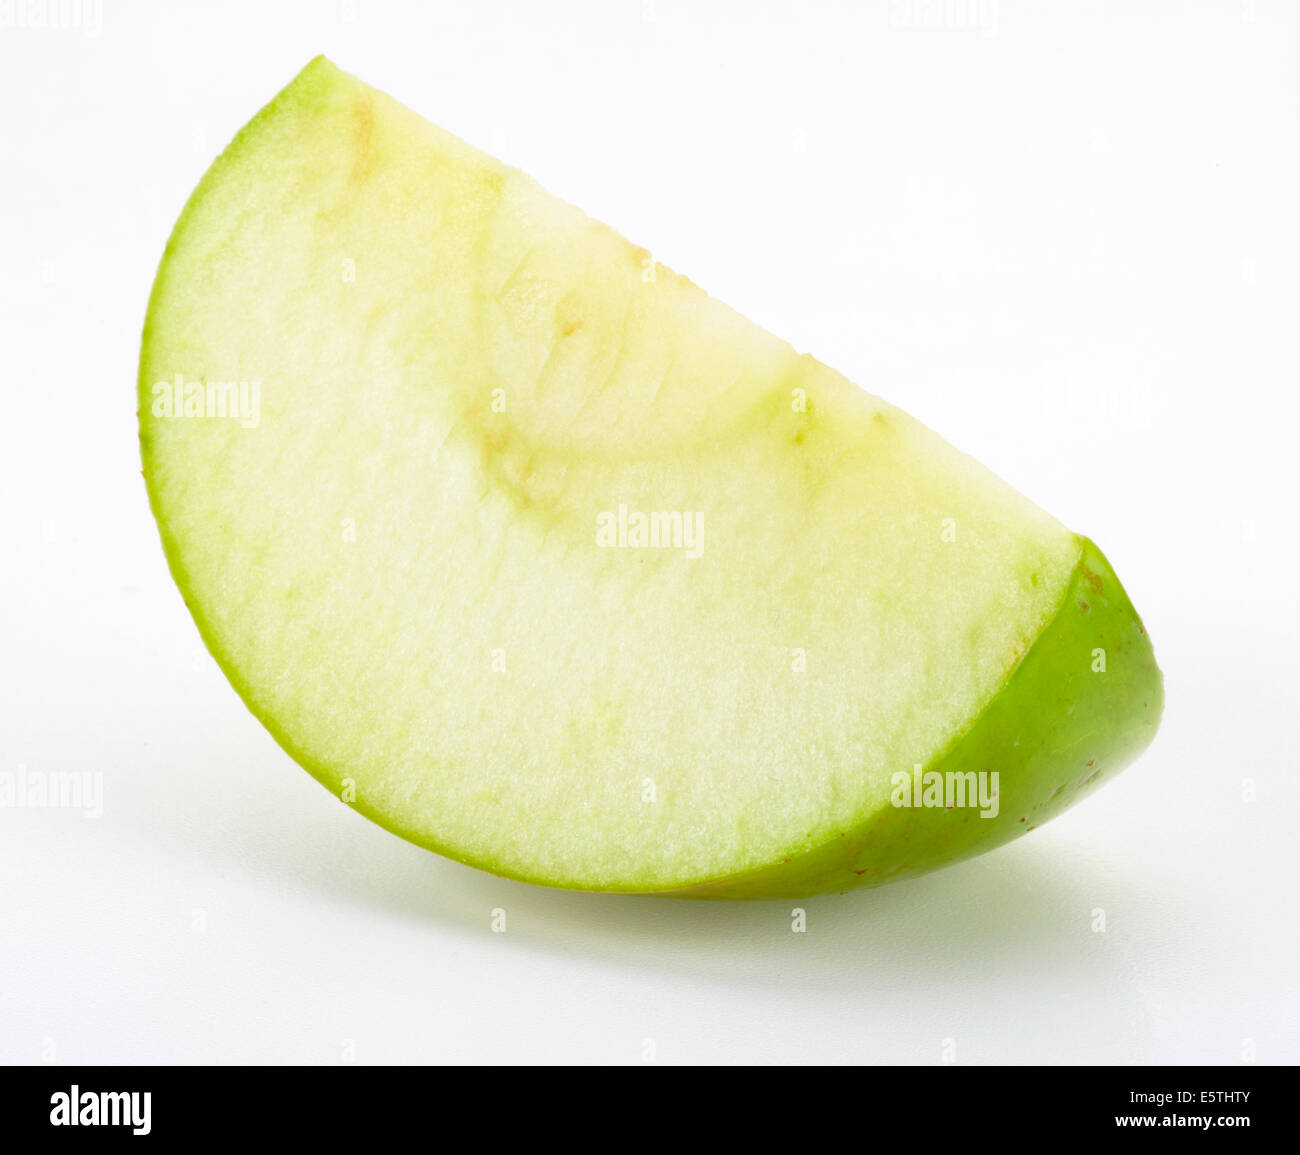 SLICE OF BRAMLEY COOKING APPLE - Stock Image